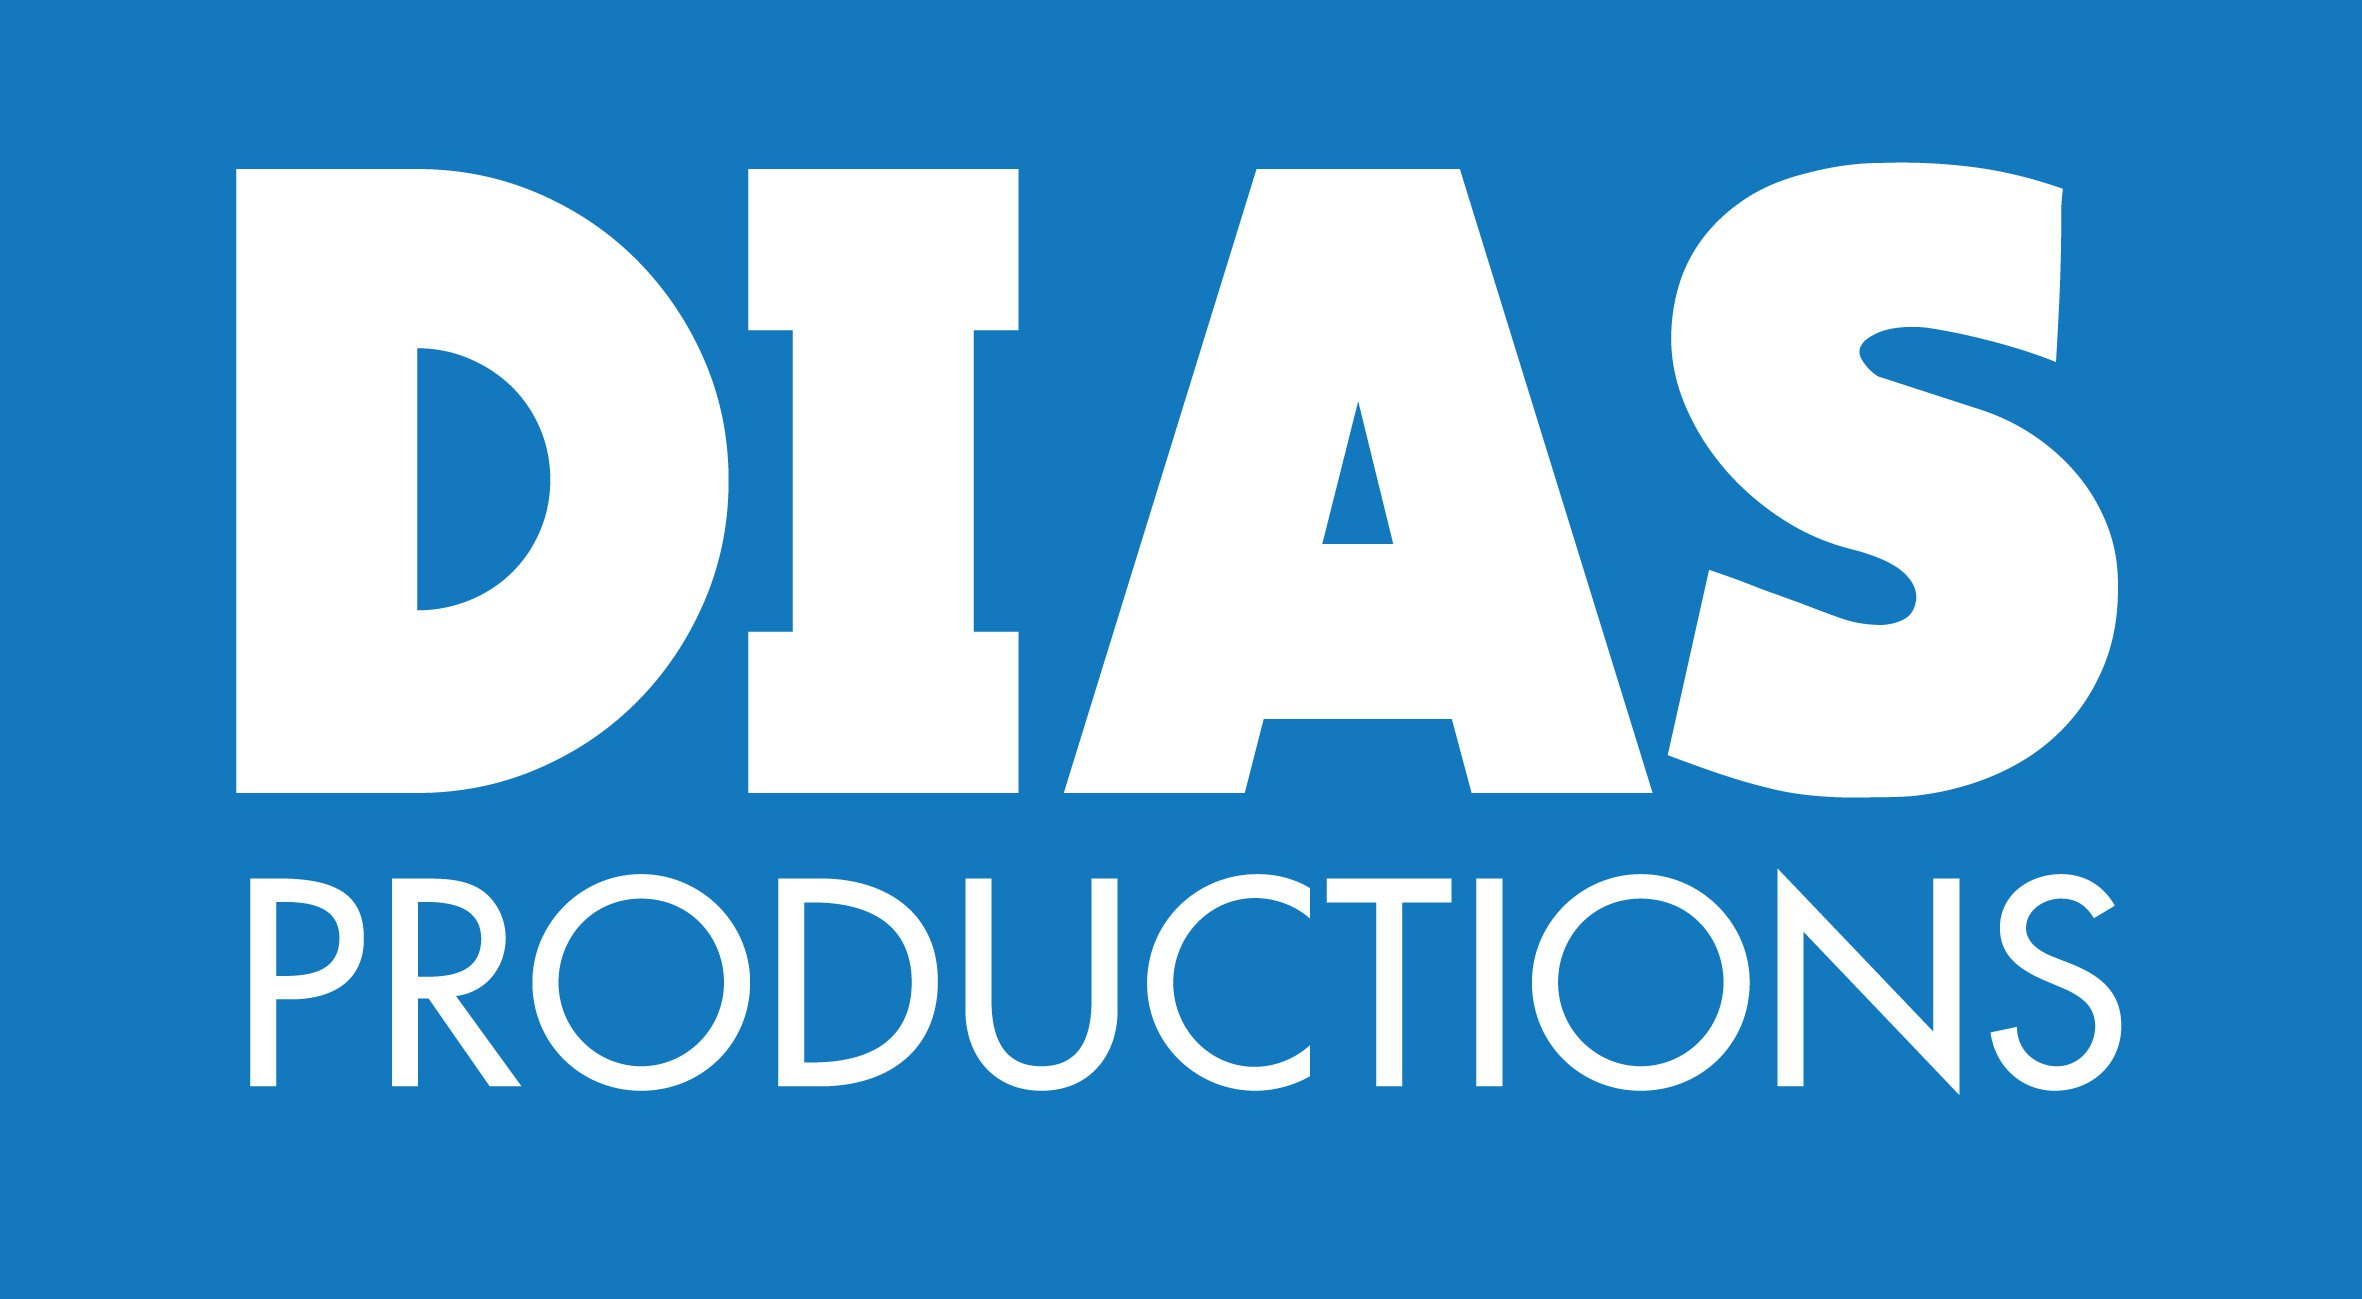 DIAS-PRODUCTIONS-FINAL-LOGO.jpg